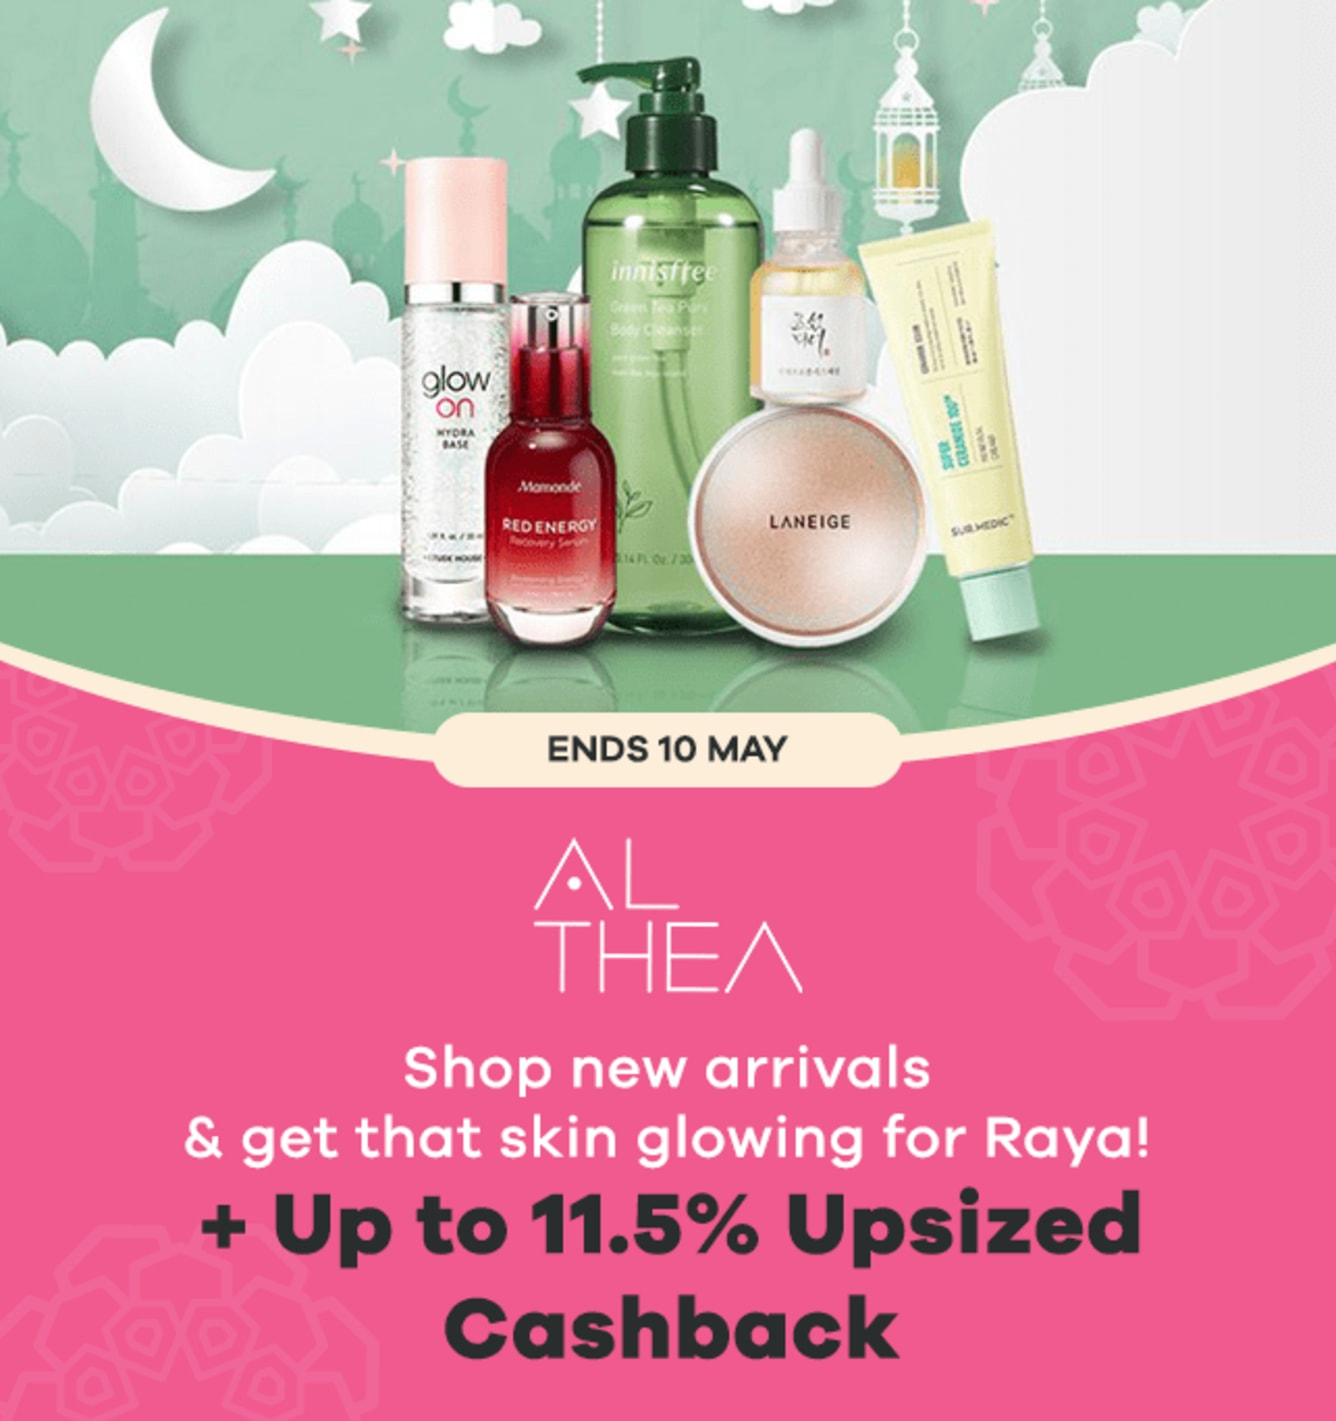 Althea Raya Deals + Up to 11.5% Upsized Cashback